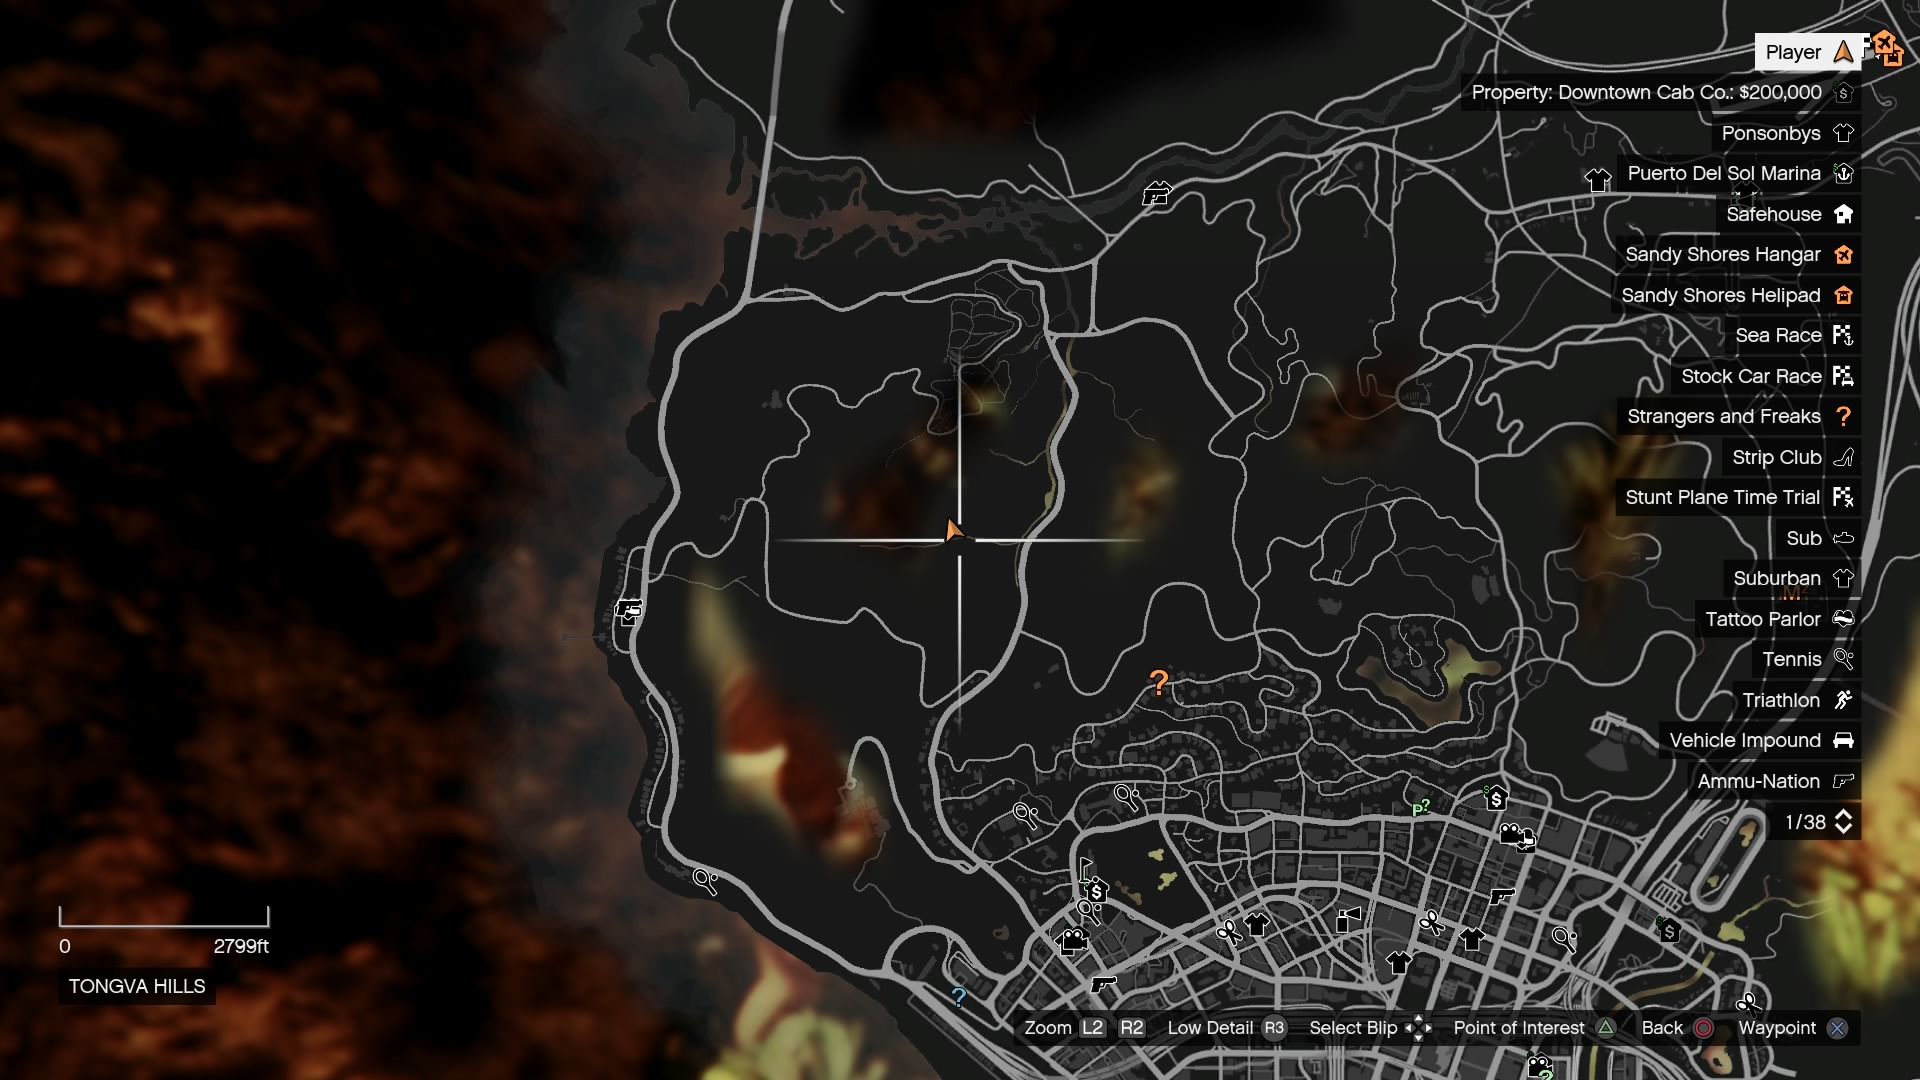 image spaceship parts gtave 23 tongva hills cave map jpg gta